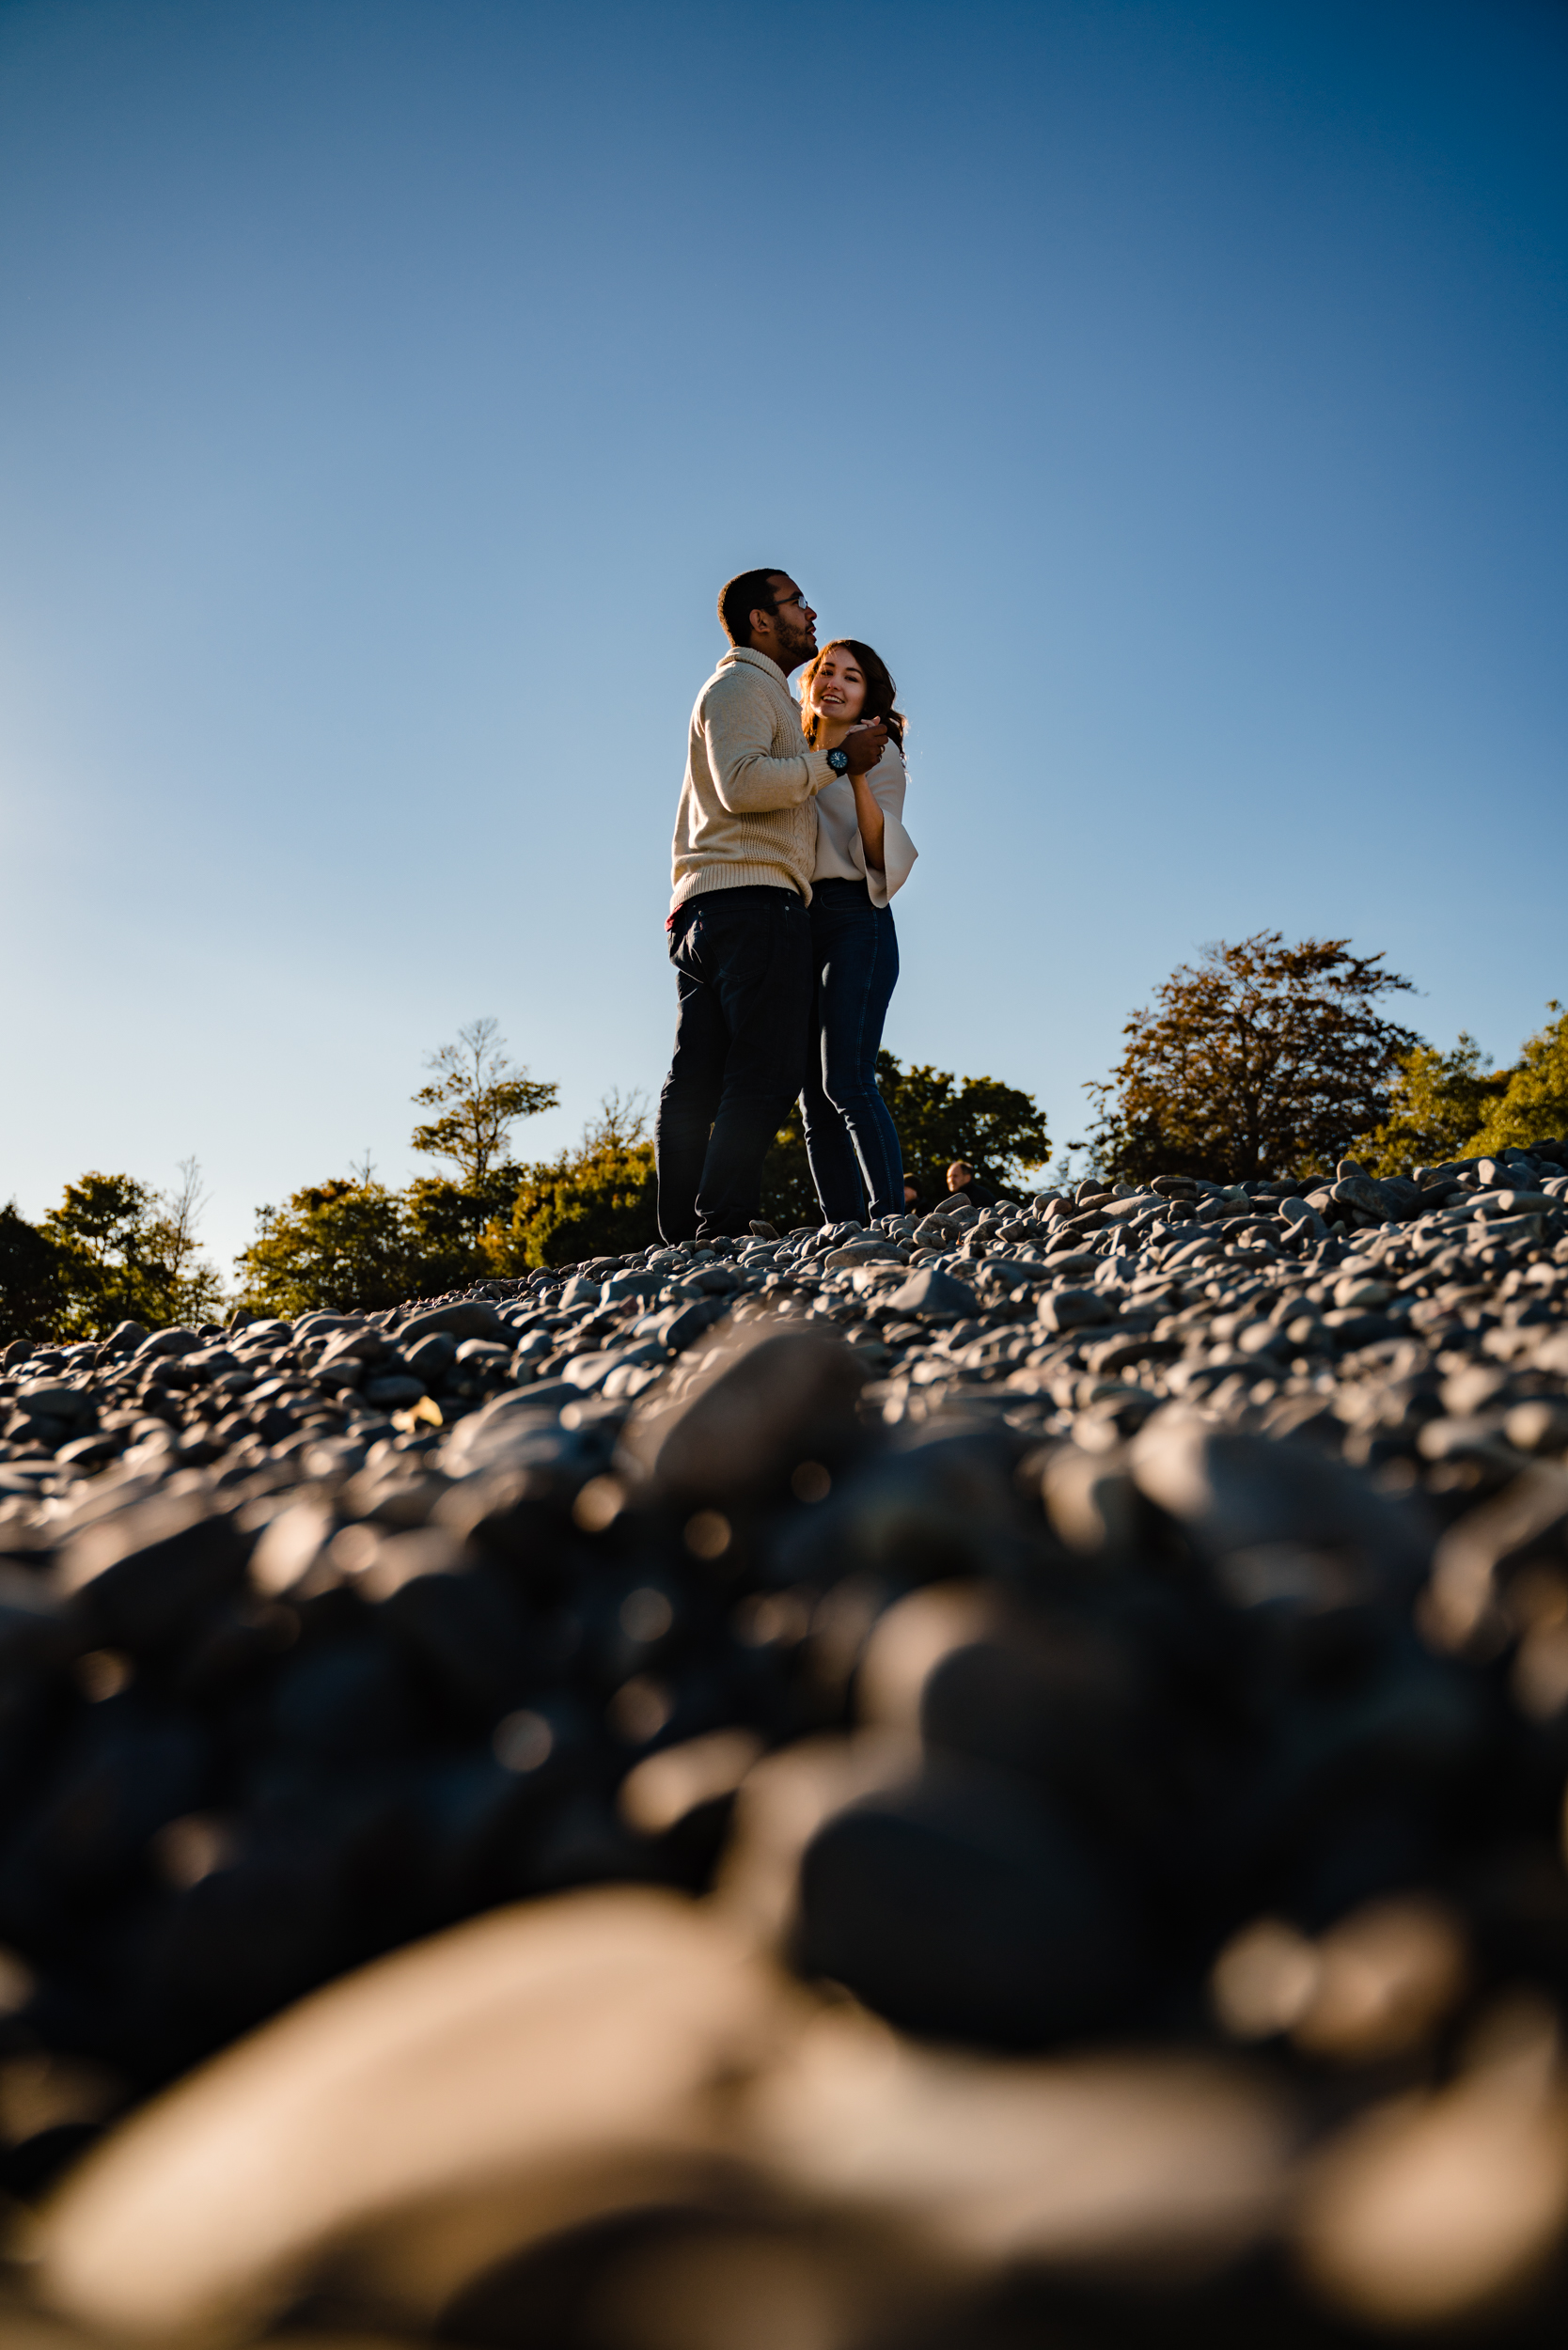 Wedding-halifax-engagement-nova-scotia-ottawa-ontario-pointpleasantpark-Fall-Autumn (33 of 53).jpg